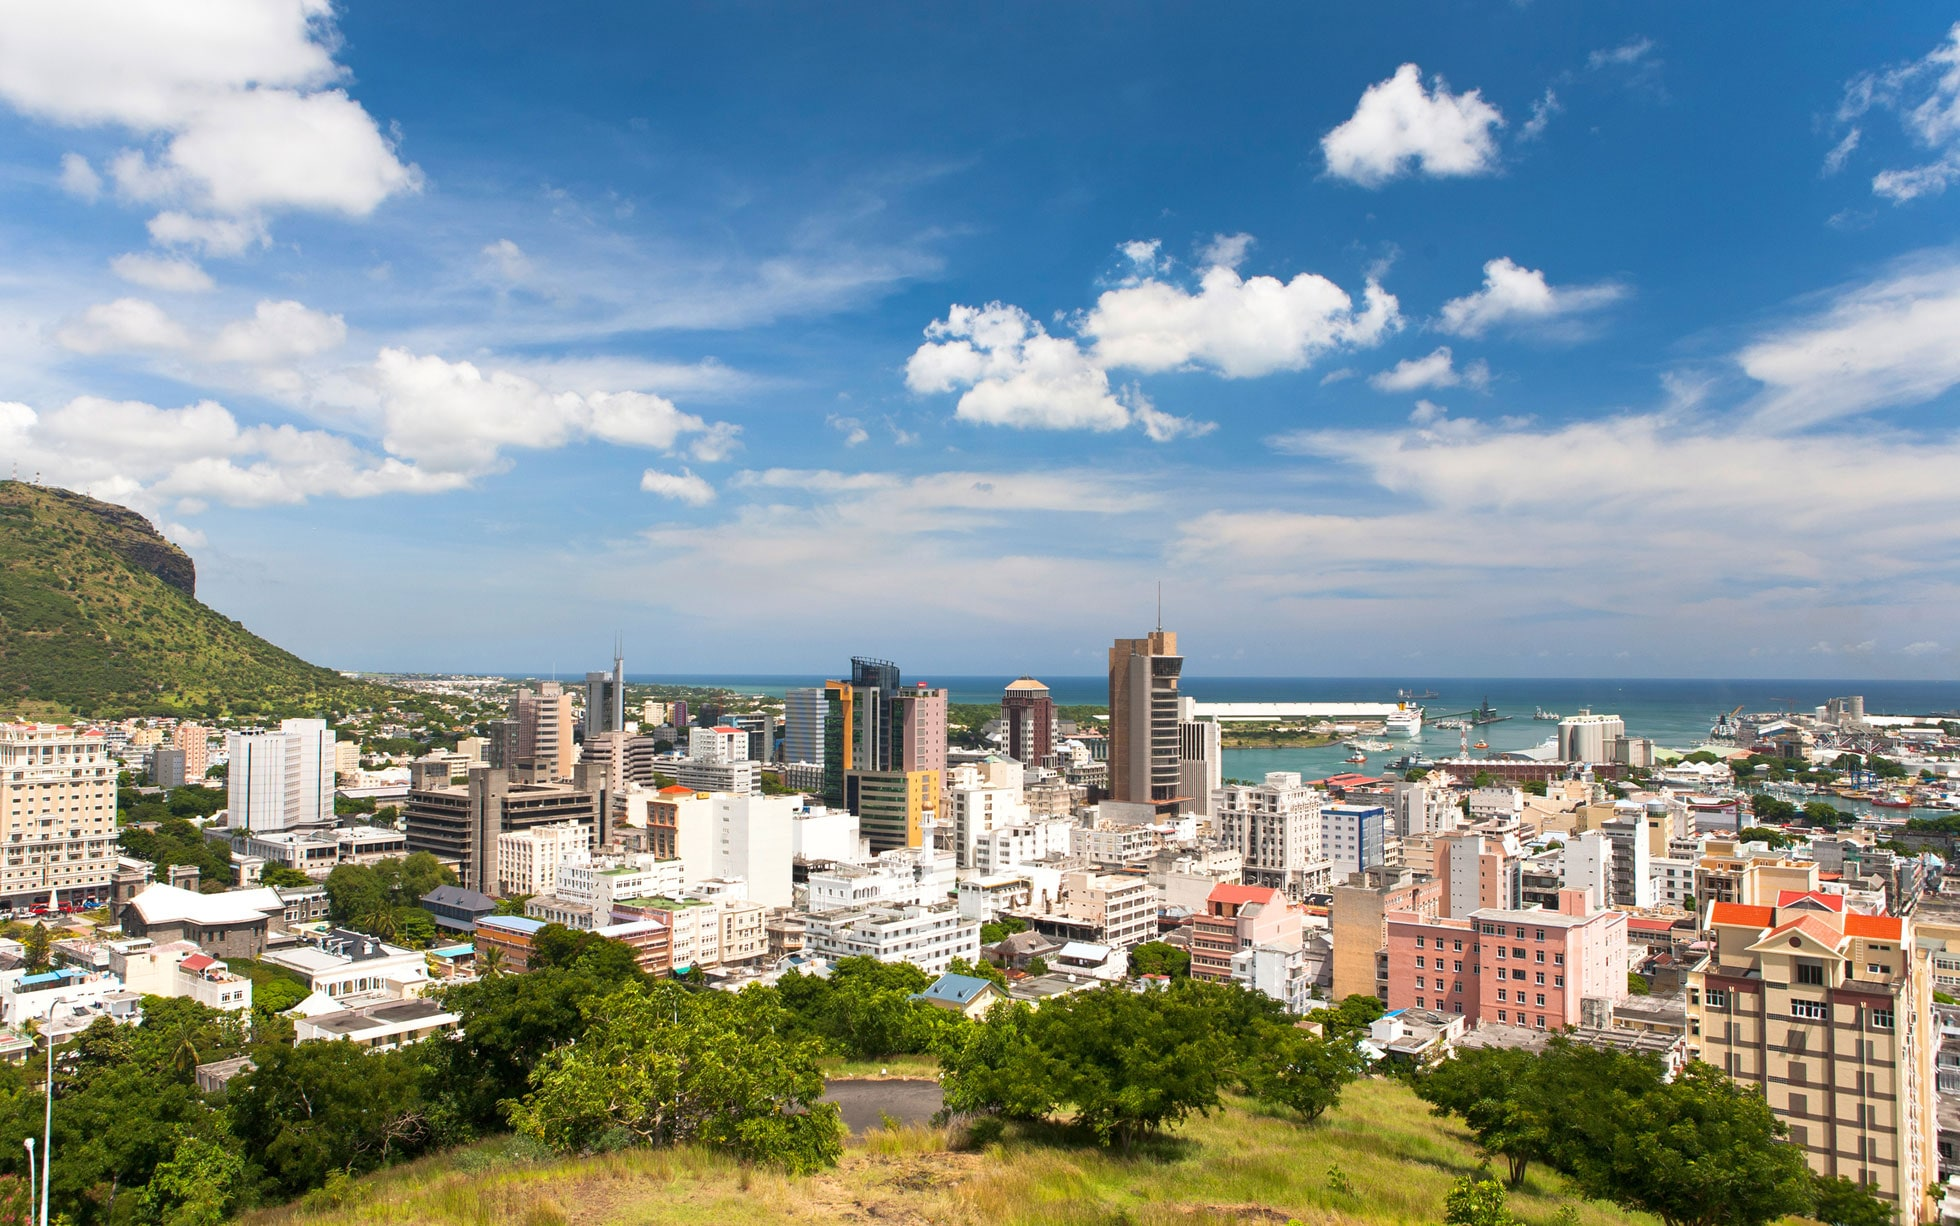 Mauritius attractions